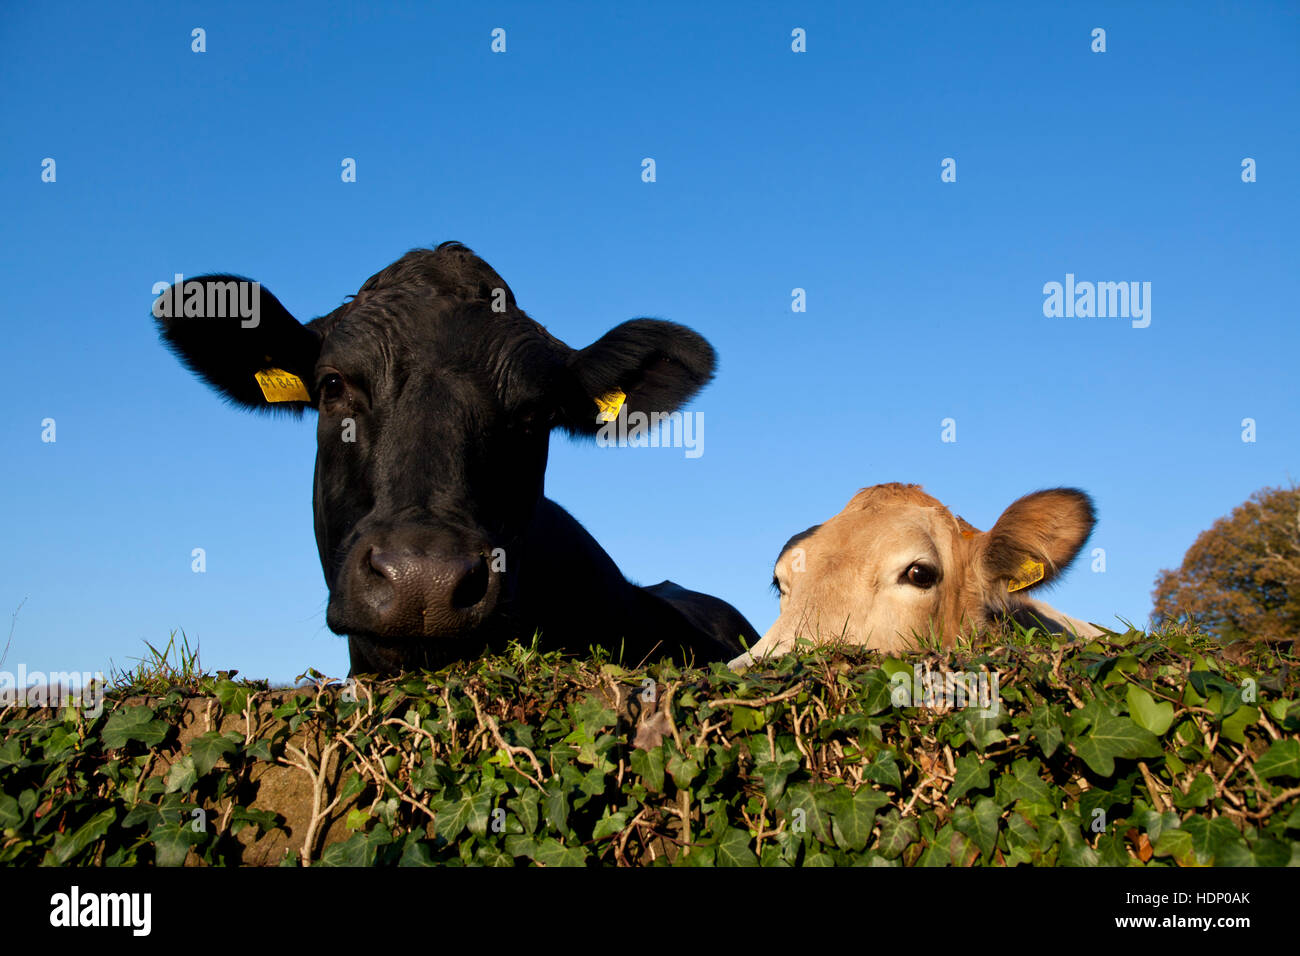 Europe, Germany, North Rhine-Westphalia, Herdecke, cows are looking over an ivy covered wall. - Stock Image